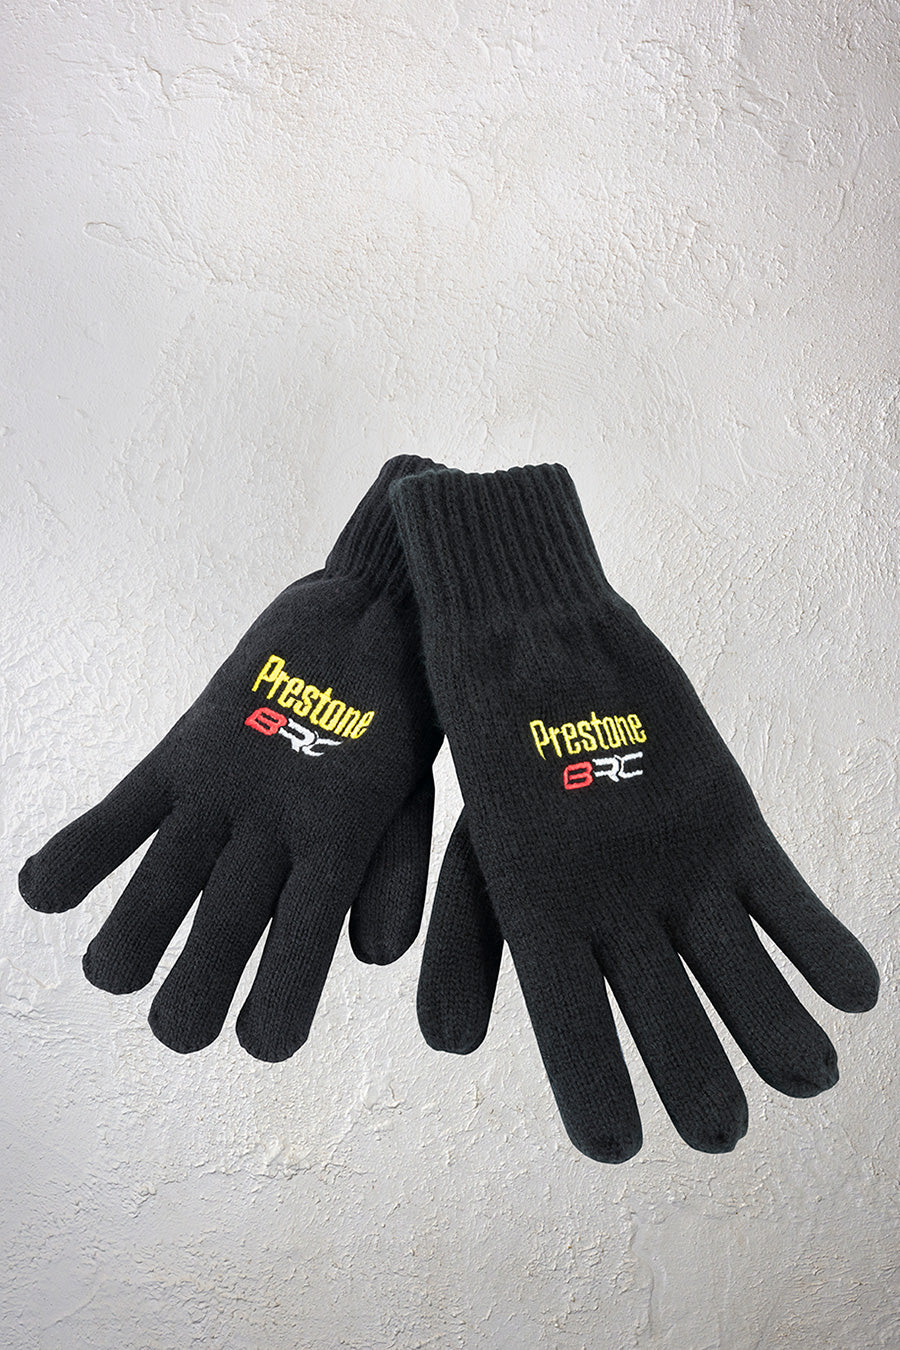 Official BRC Thinsulate™ Gloves